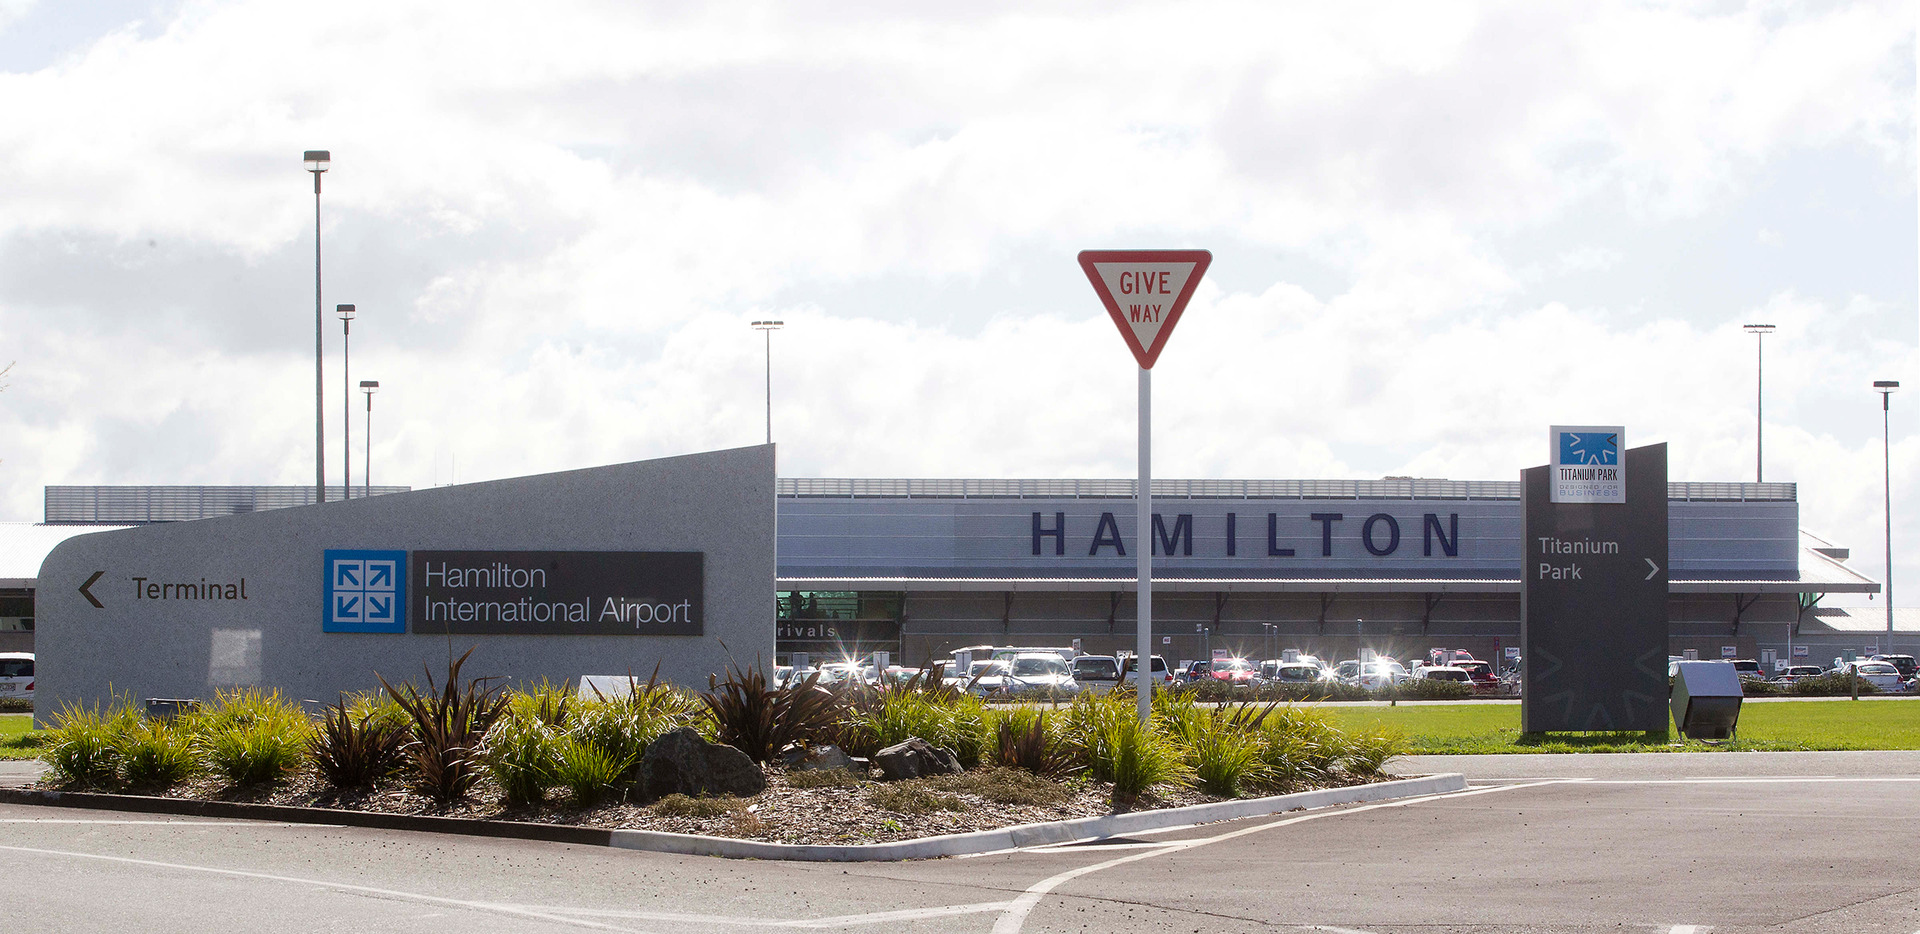 Emergency at Hamilton airport: Plane with landing gear problems